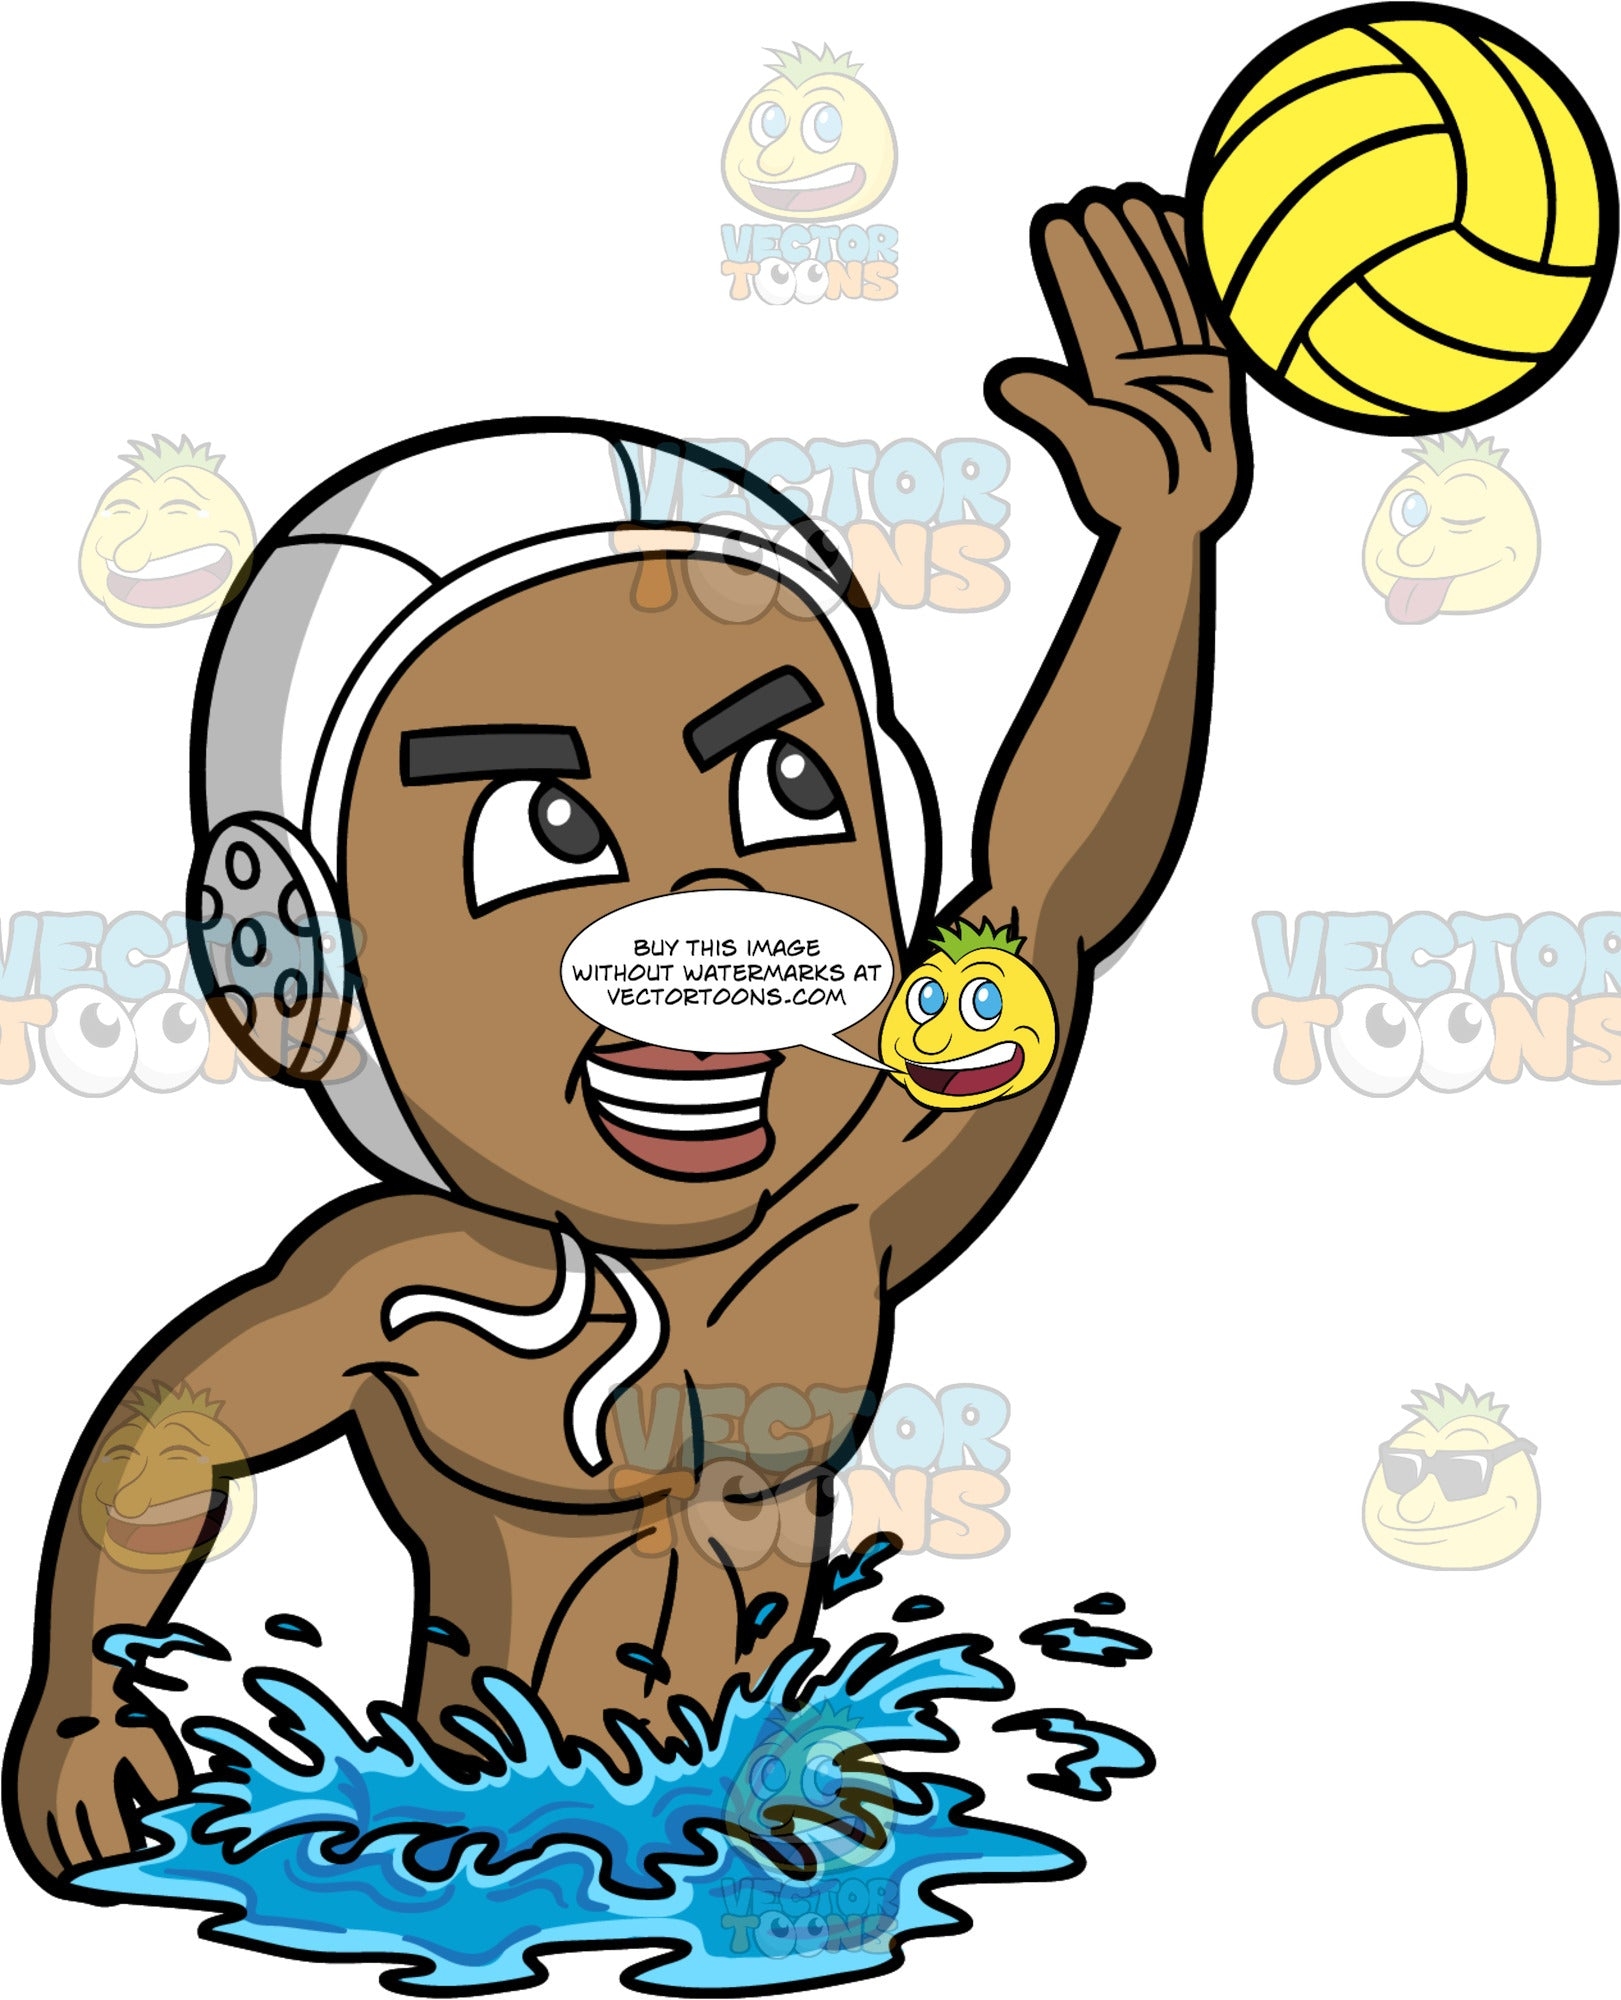 A Black Man Reaching Up To Catch A Water Polo Ball. A muscular black man wearing a white water polo cap, lifts his upper body out of the water and reaches his one arm up to catch a yellow water polo ball